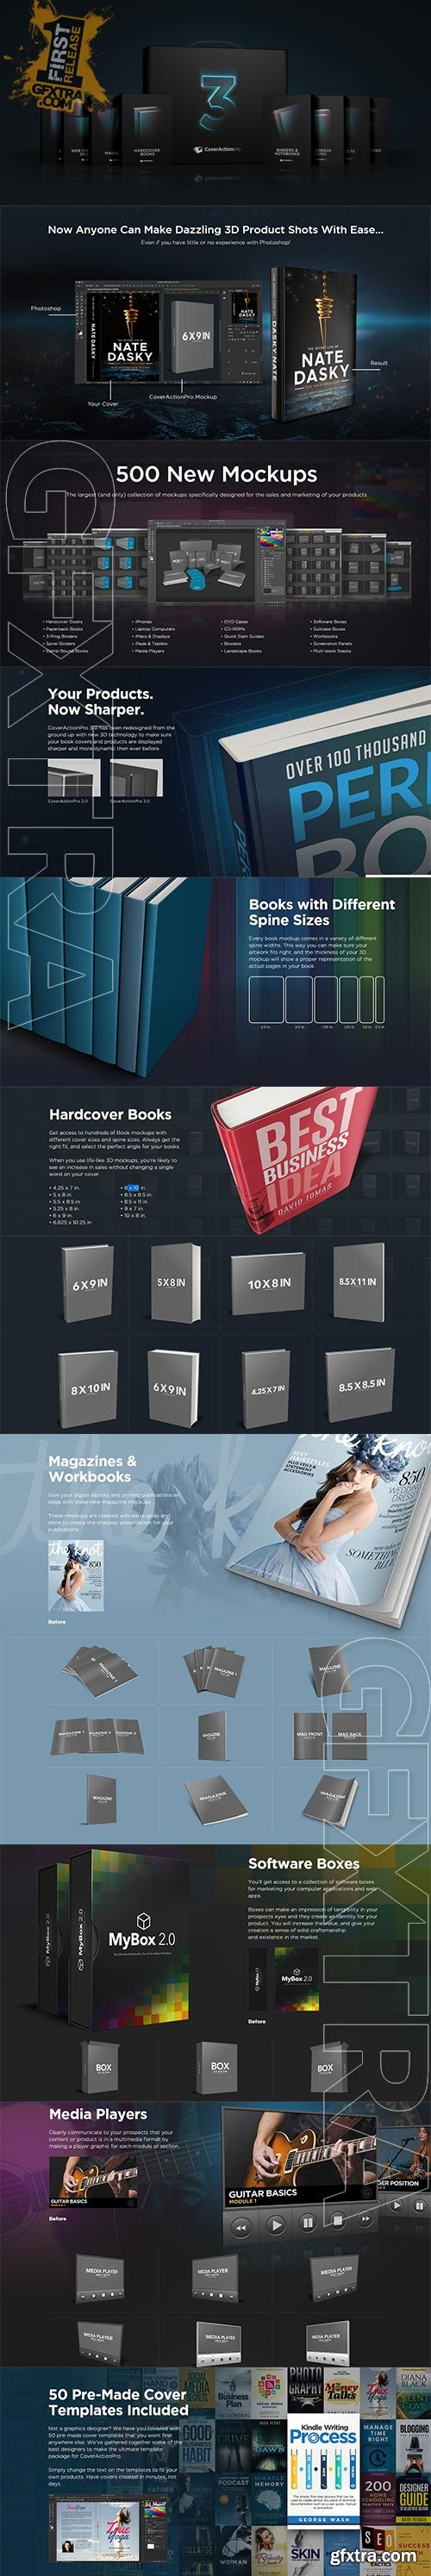 Cover Action Pro V3 - The Ultimate Marketing Toolkit for Adobe Photoshop